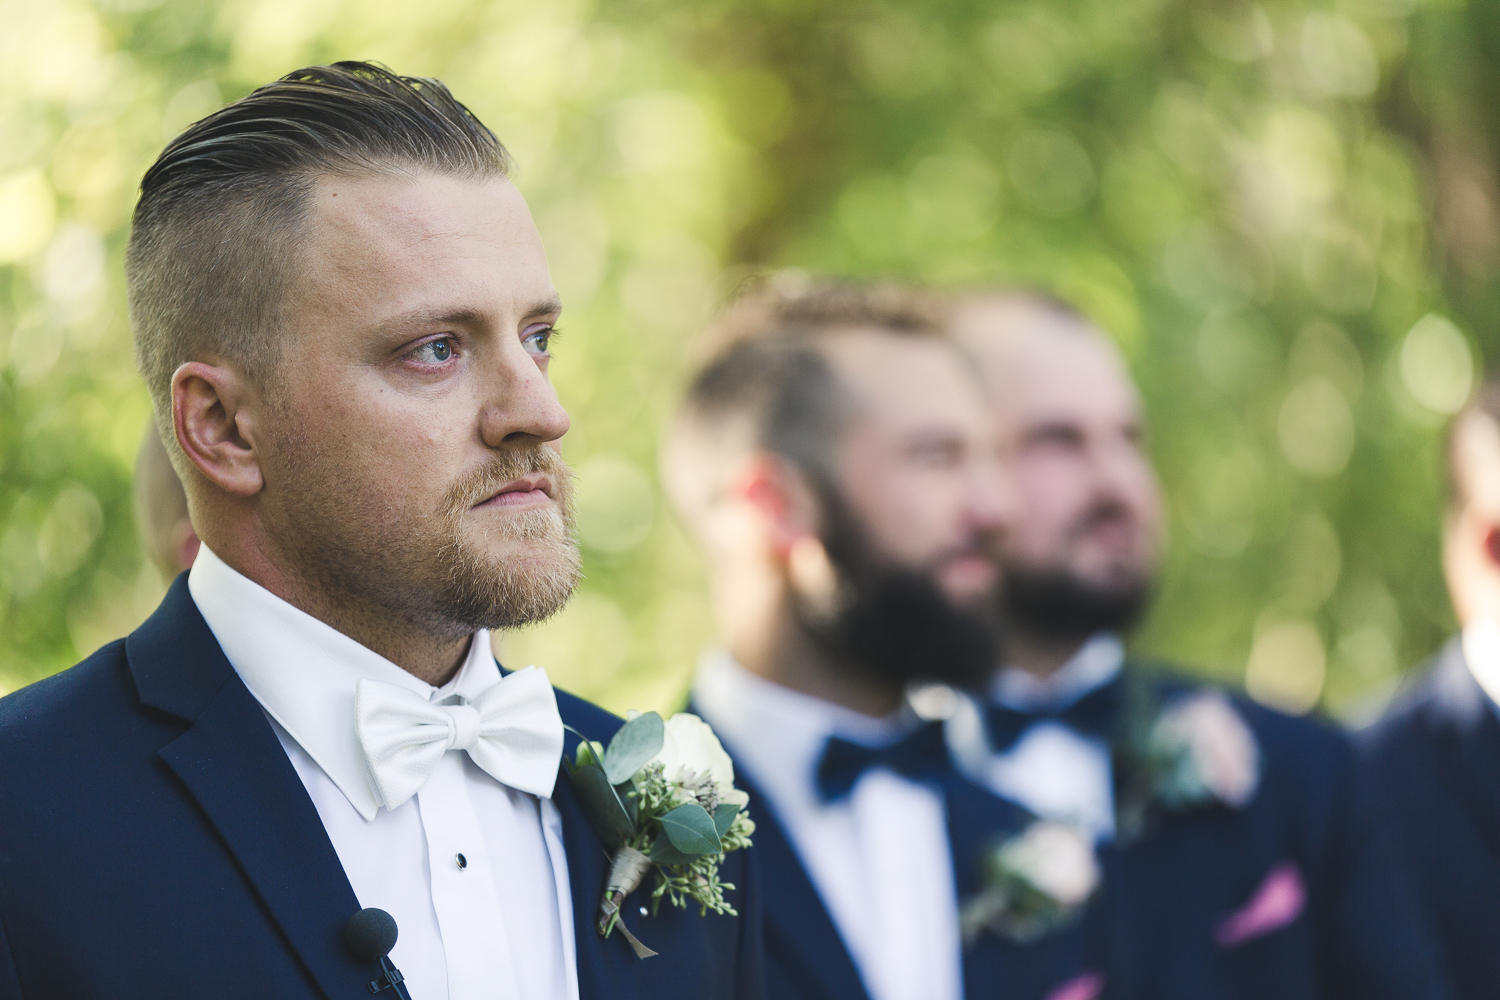 Groom seeing the bride walk down the aisle for the first time